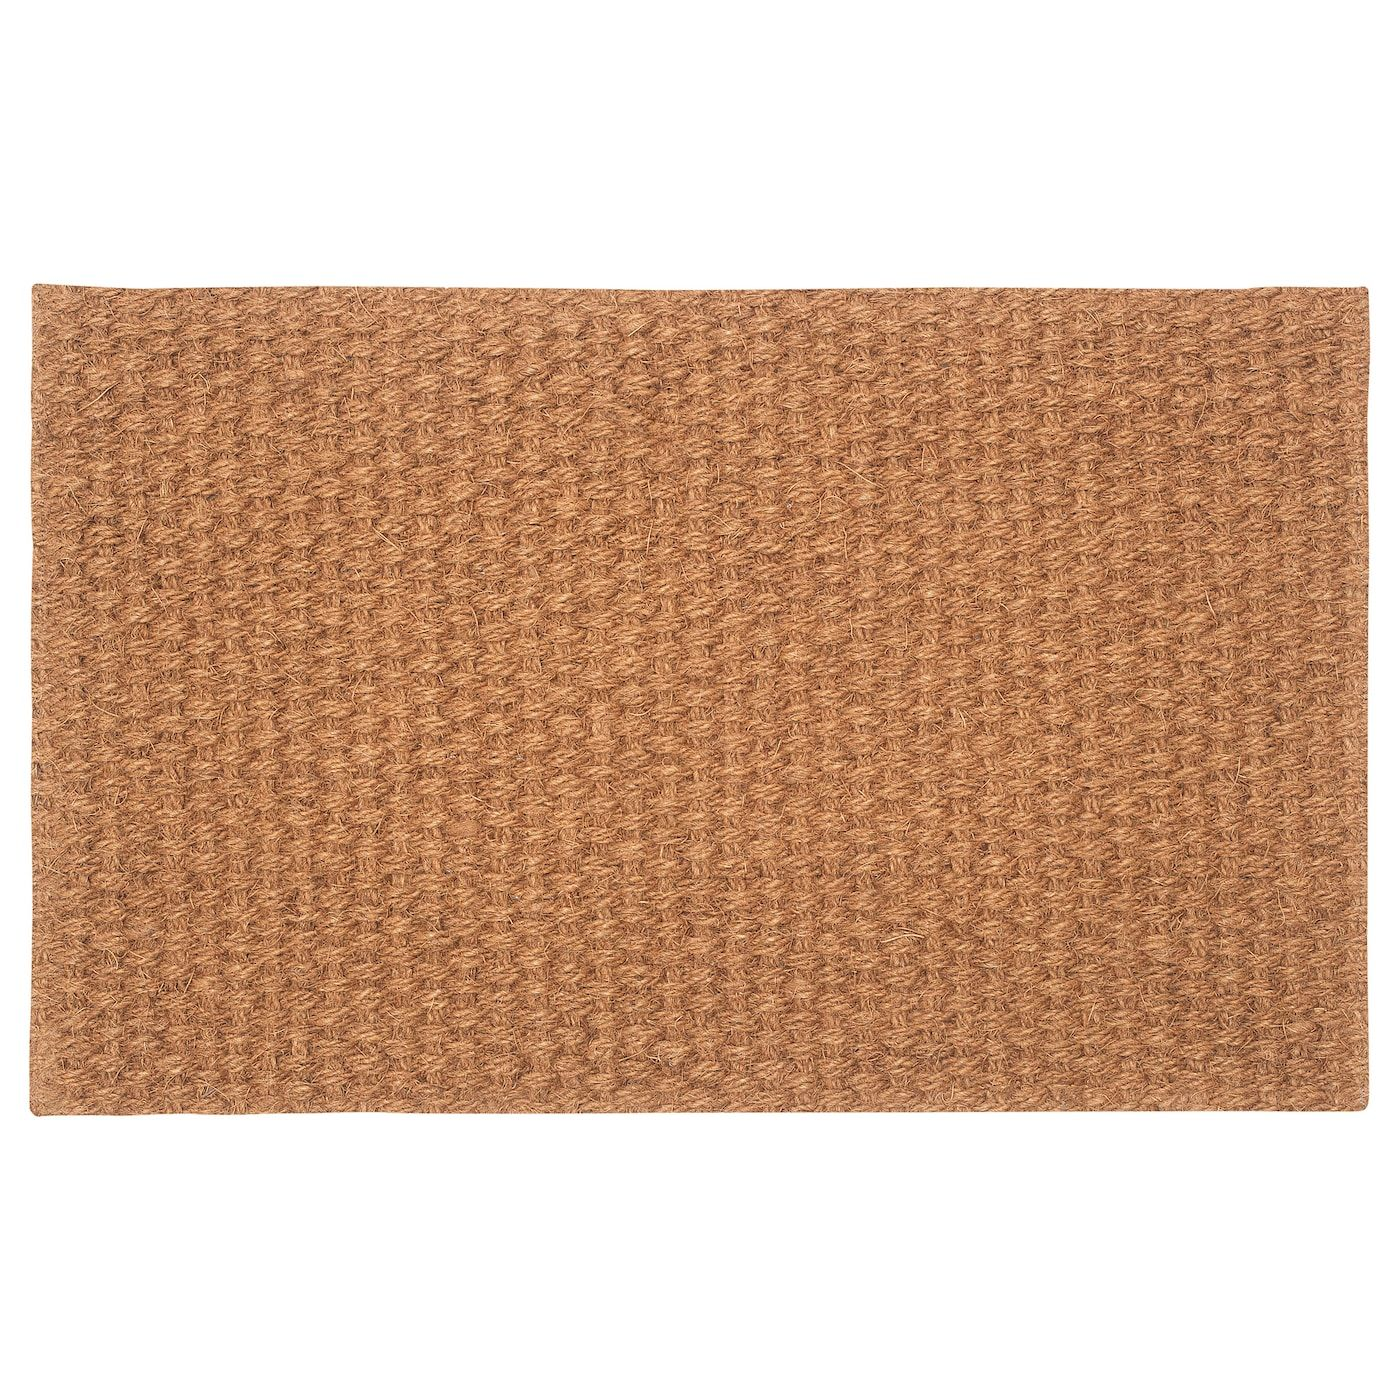 Ikea Sindal Door Mat Natural Easy To Keep Clean Just Vacuum Or Shake The Rug The Backing Keeps The Door Mat Firmly In P Door Mat Ikea Natural Door Mats